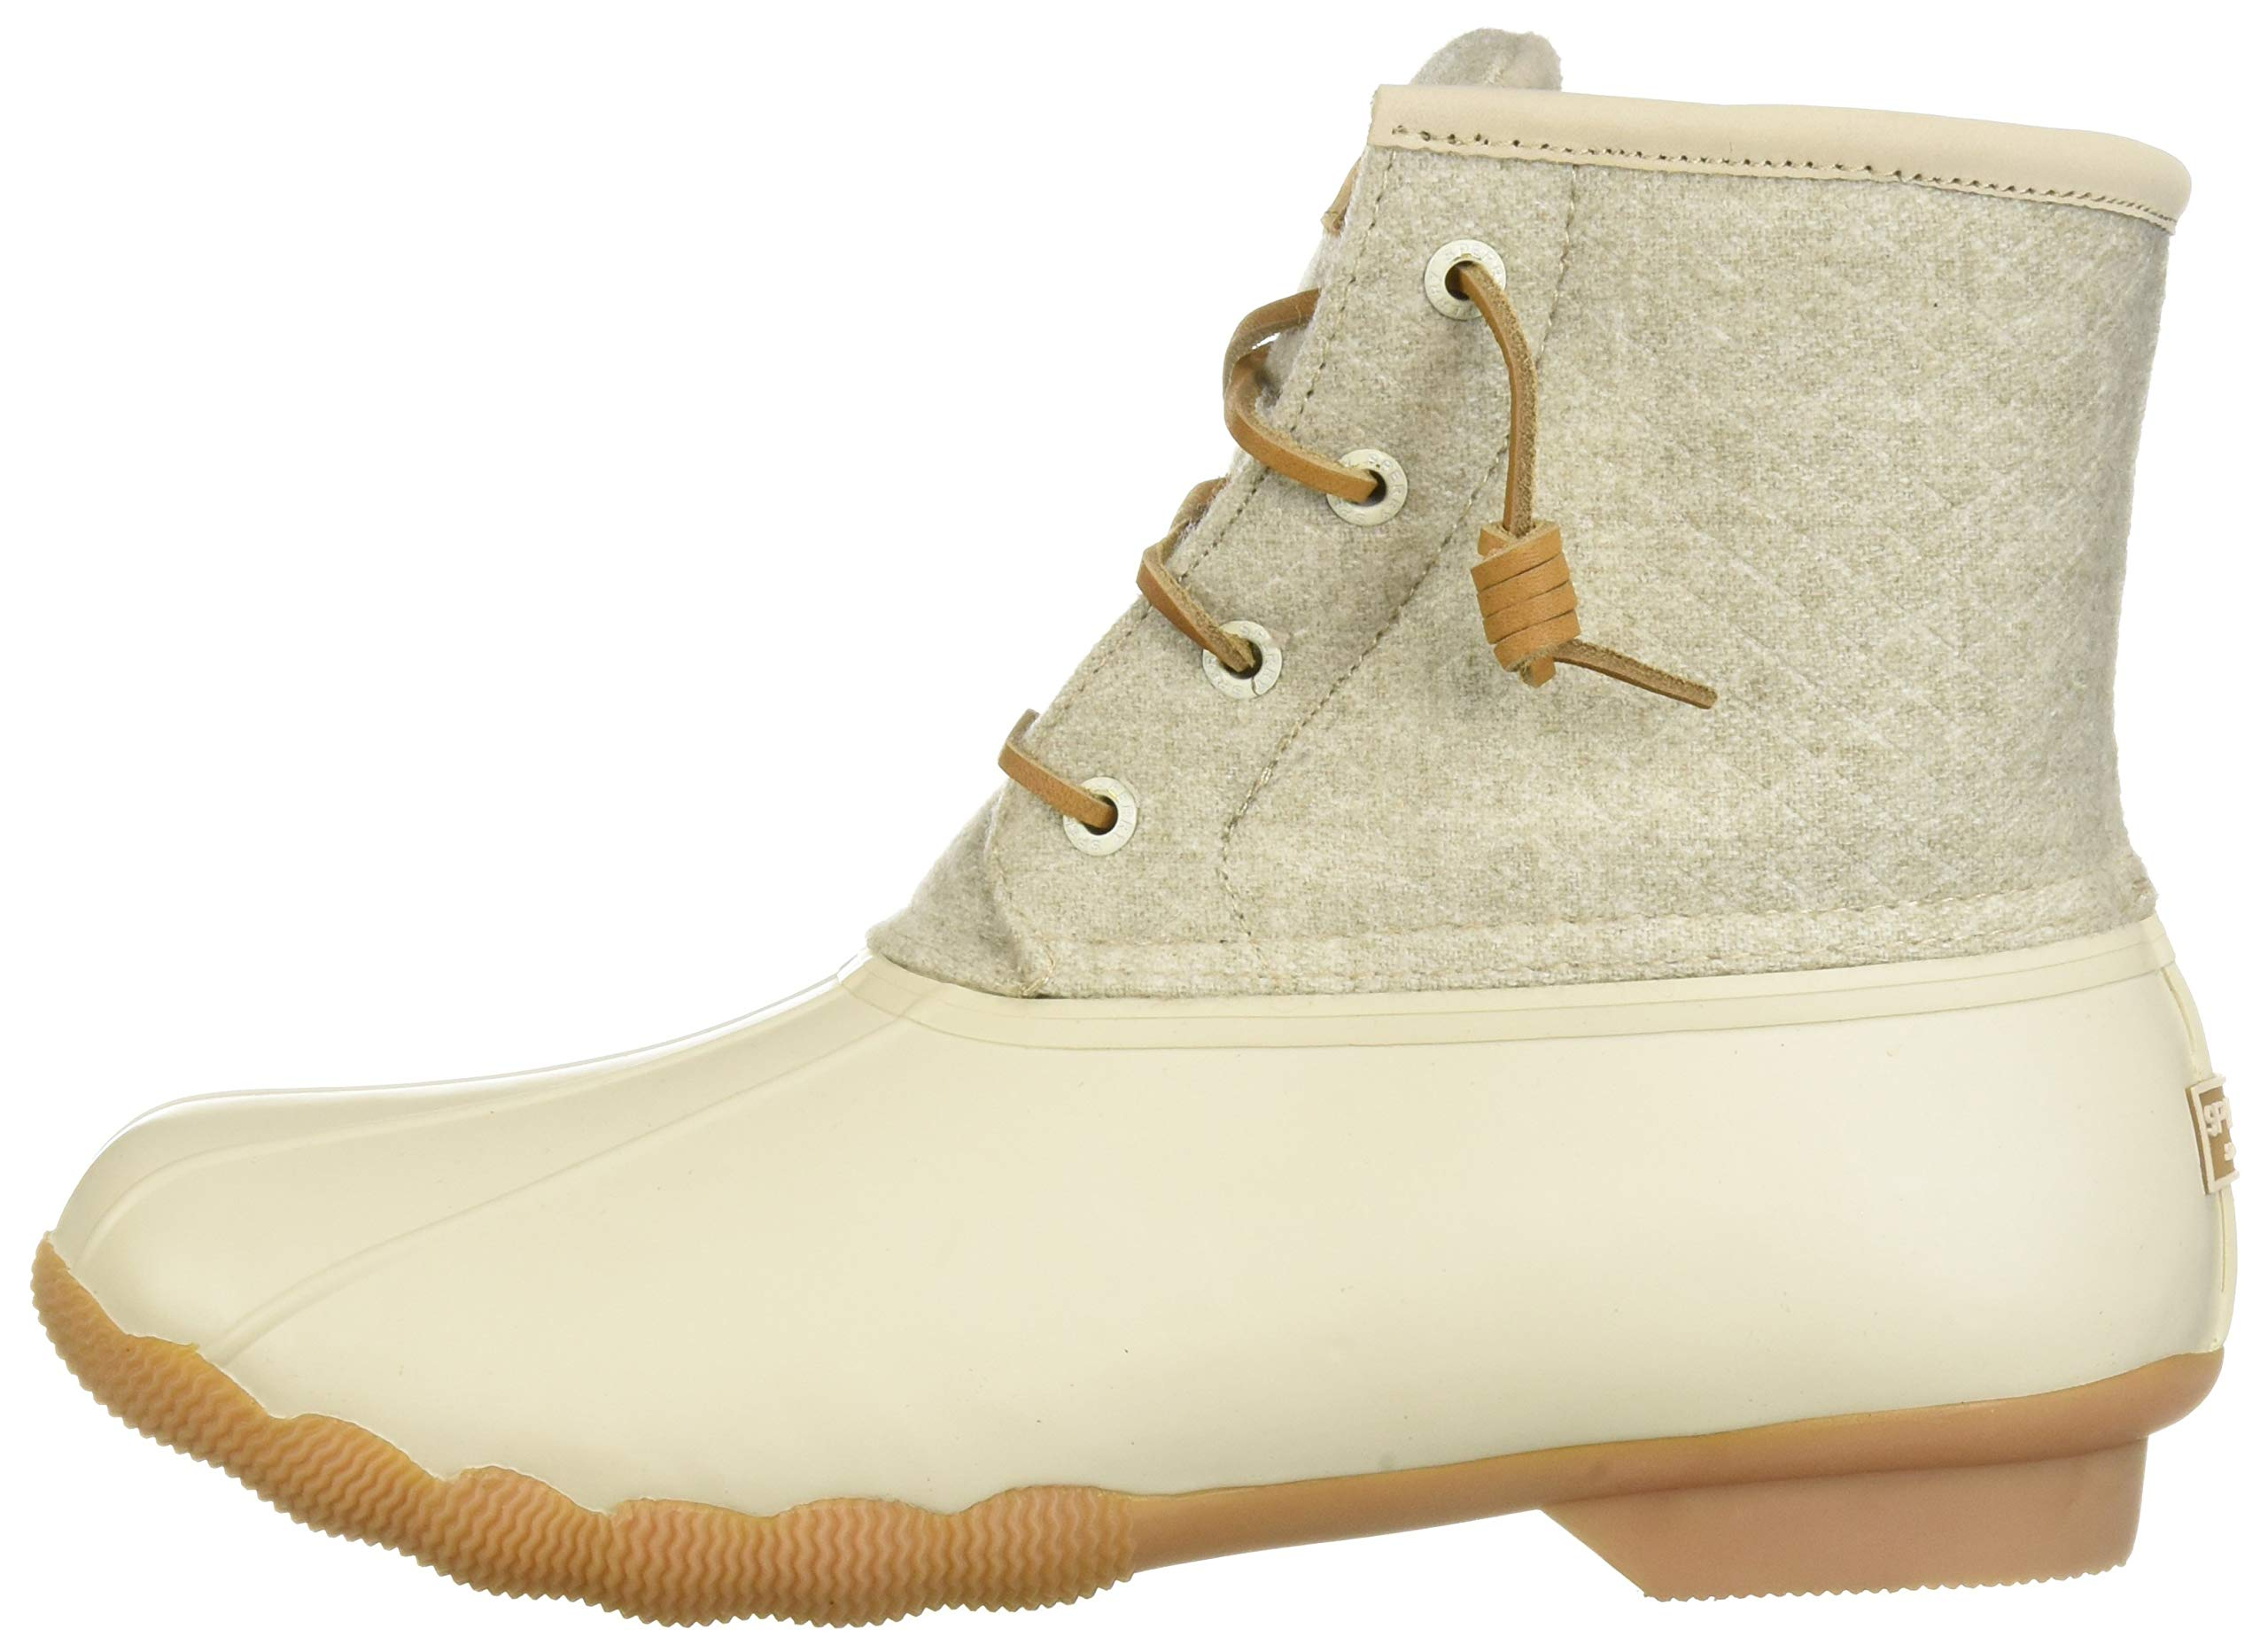 Sperry Women's Saltwater Emboss Wool Boots